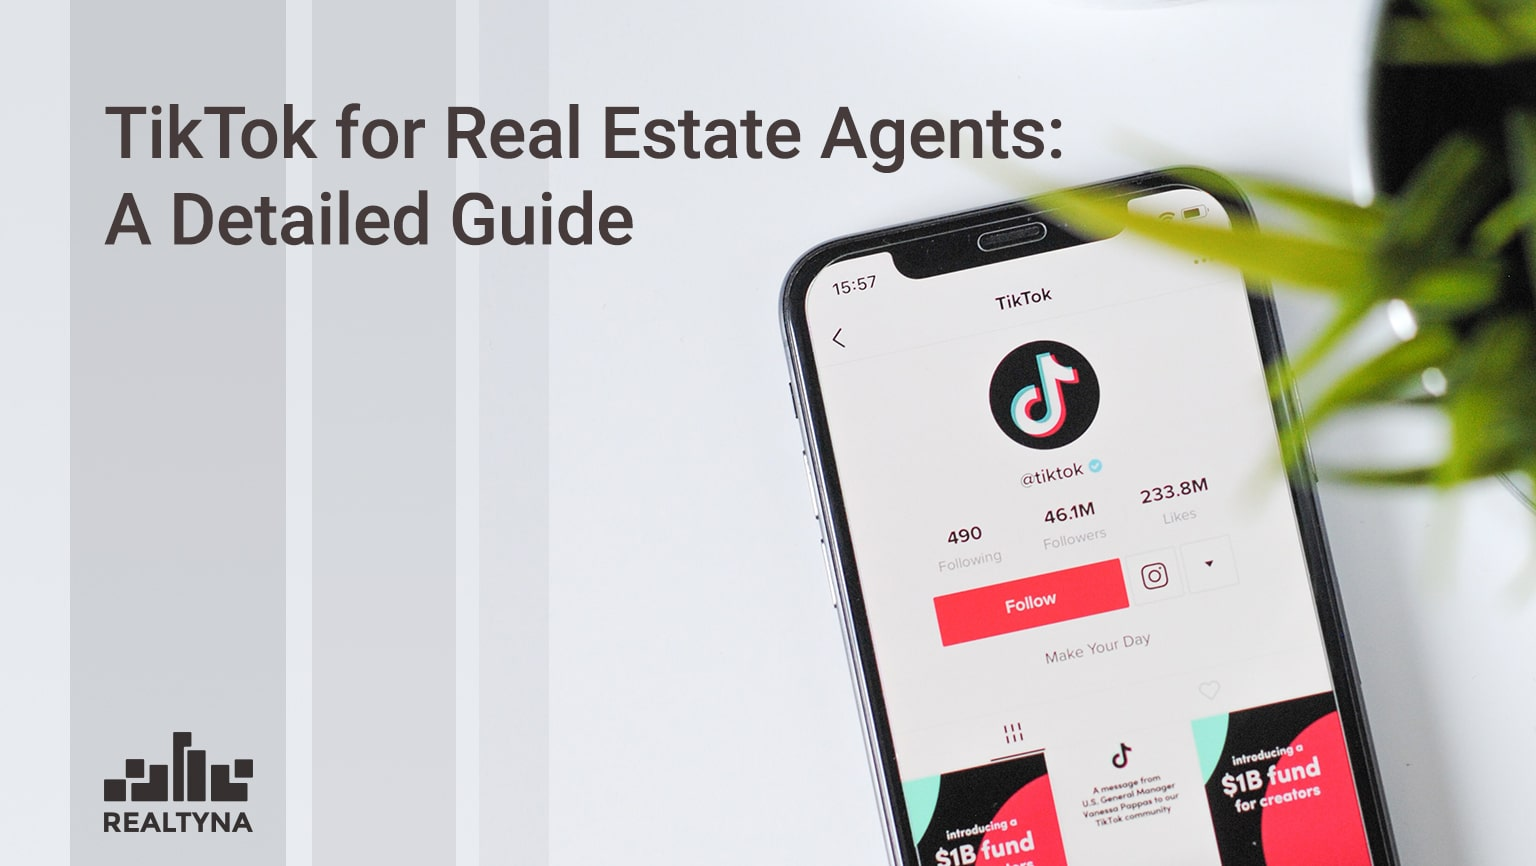 TikTok for real estate